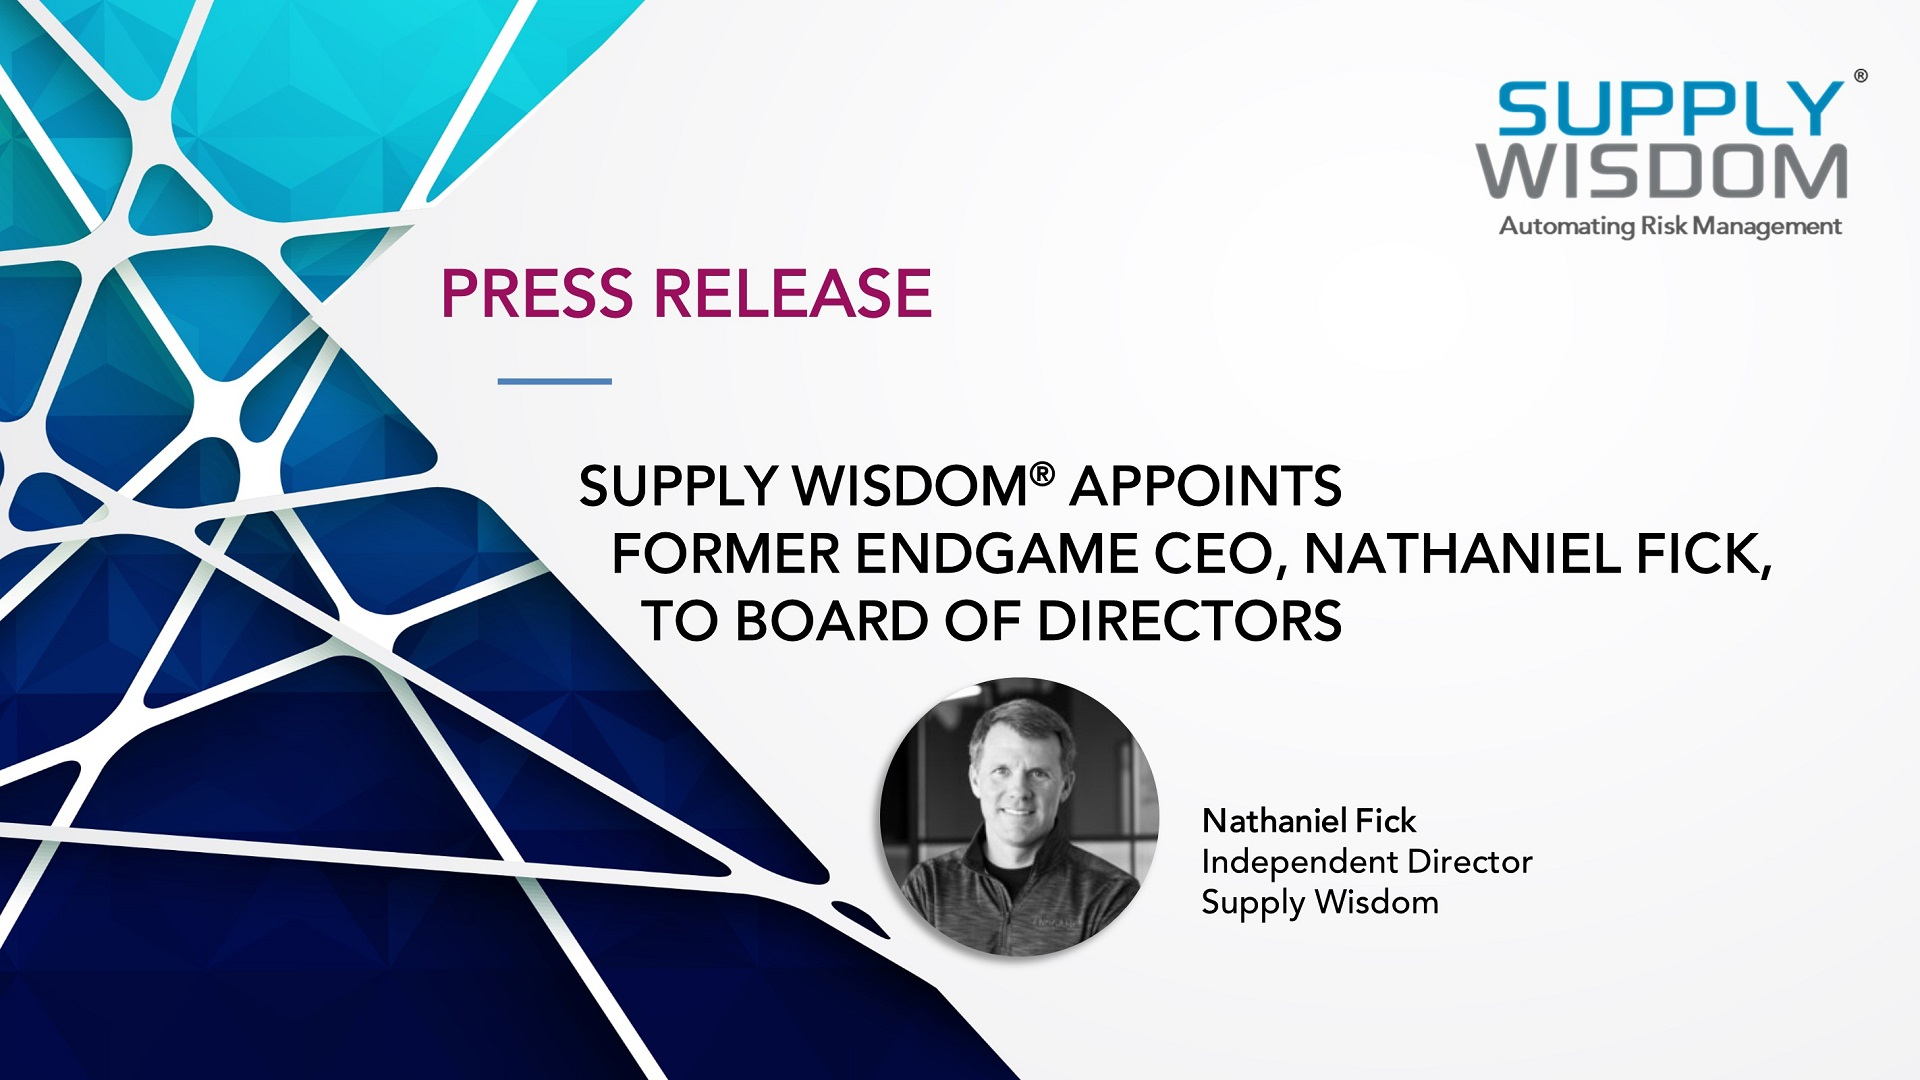 Nathaniel Fick joins Supply Wisdom Board of Directors